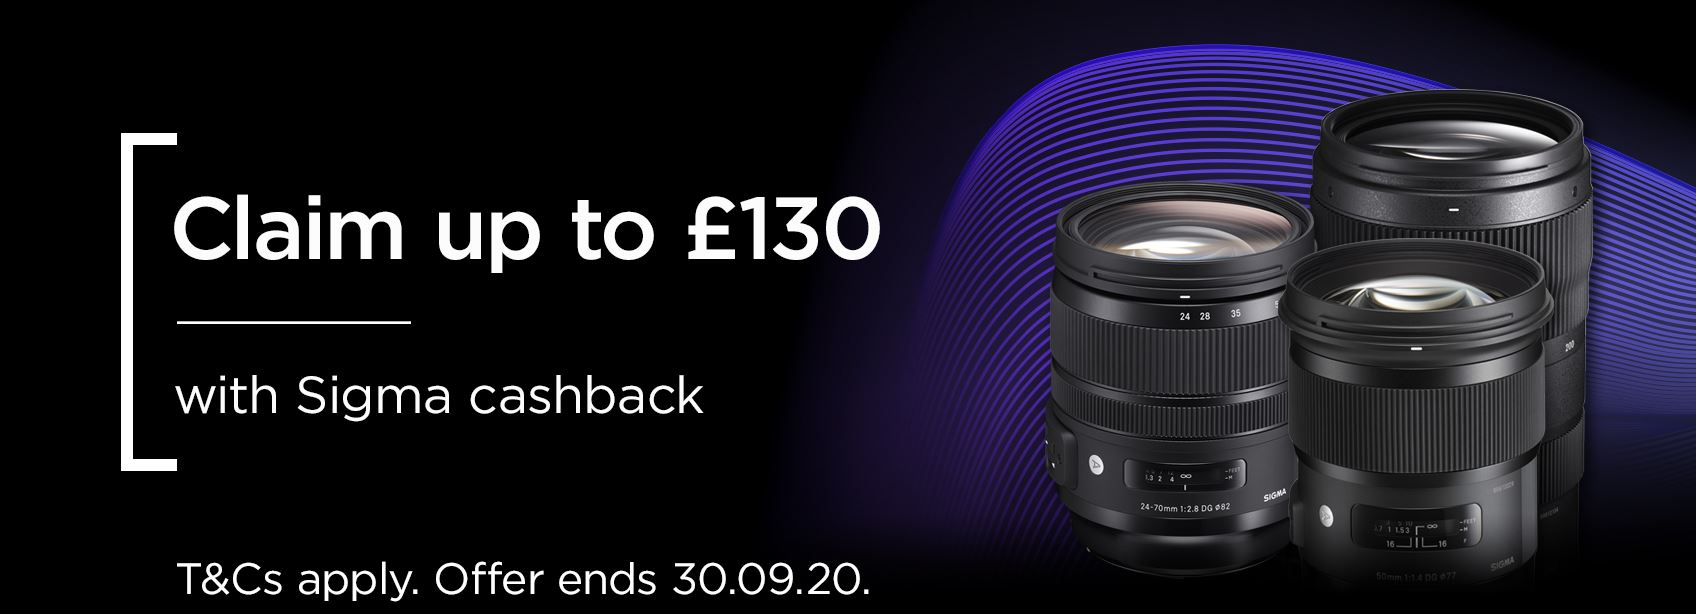 Claim up to £130 with Sigma cashback T&Cs apply. Offer ends 30.09.20